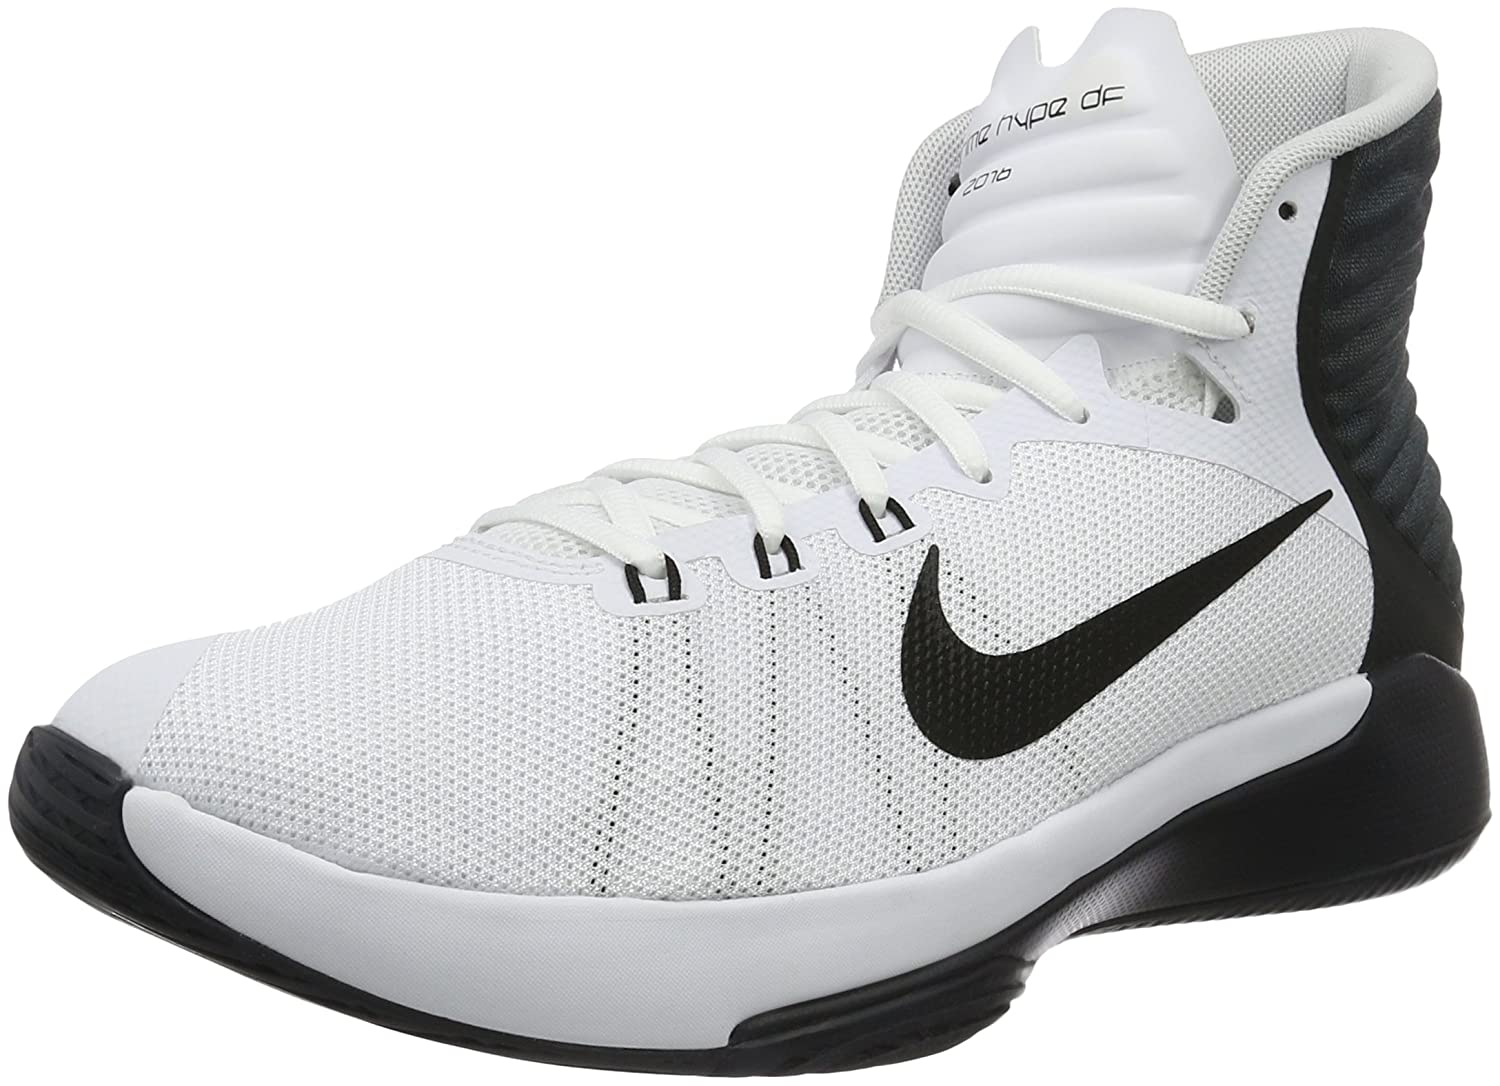 separation shoes 35db7 d9090 NIKE Mens Prime Hype DF 2016 Basketball Shoes